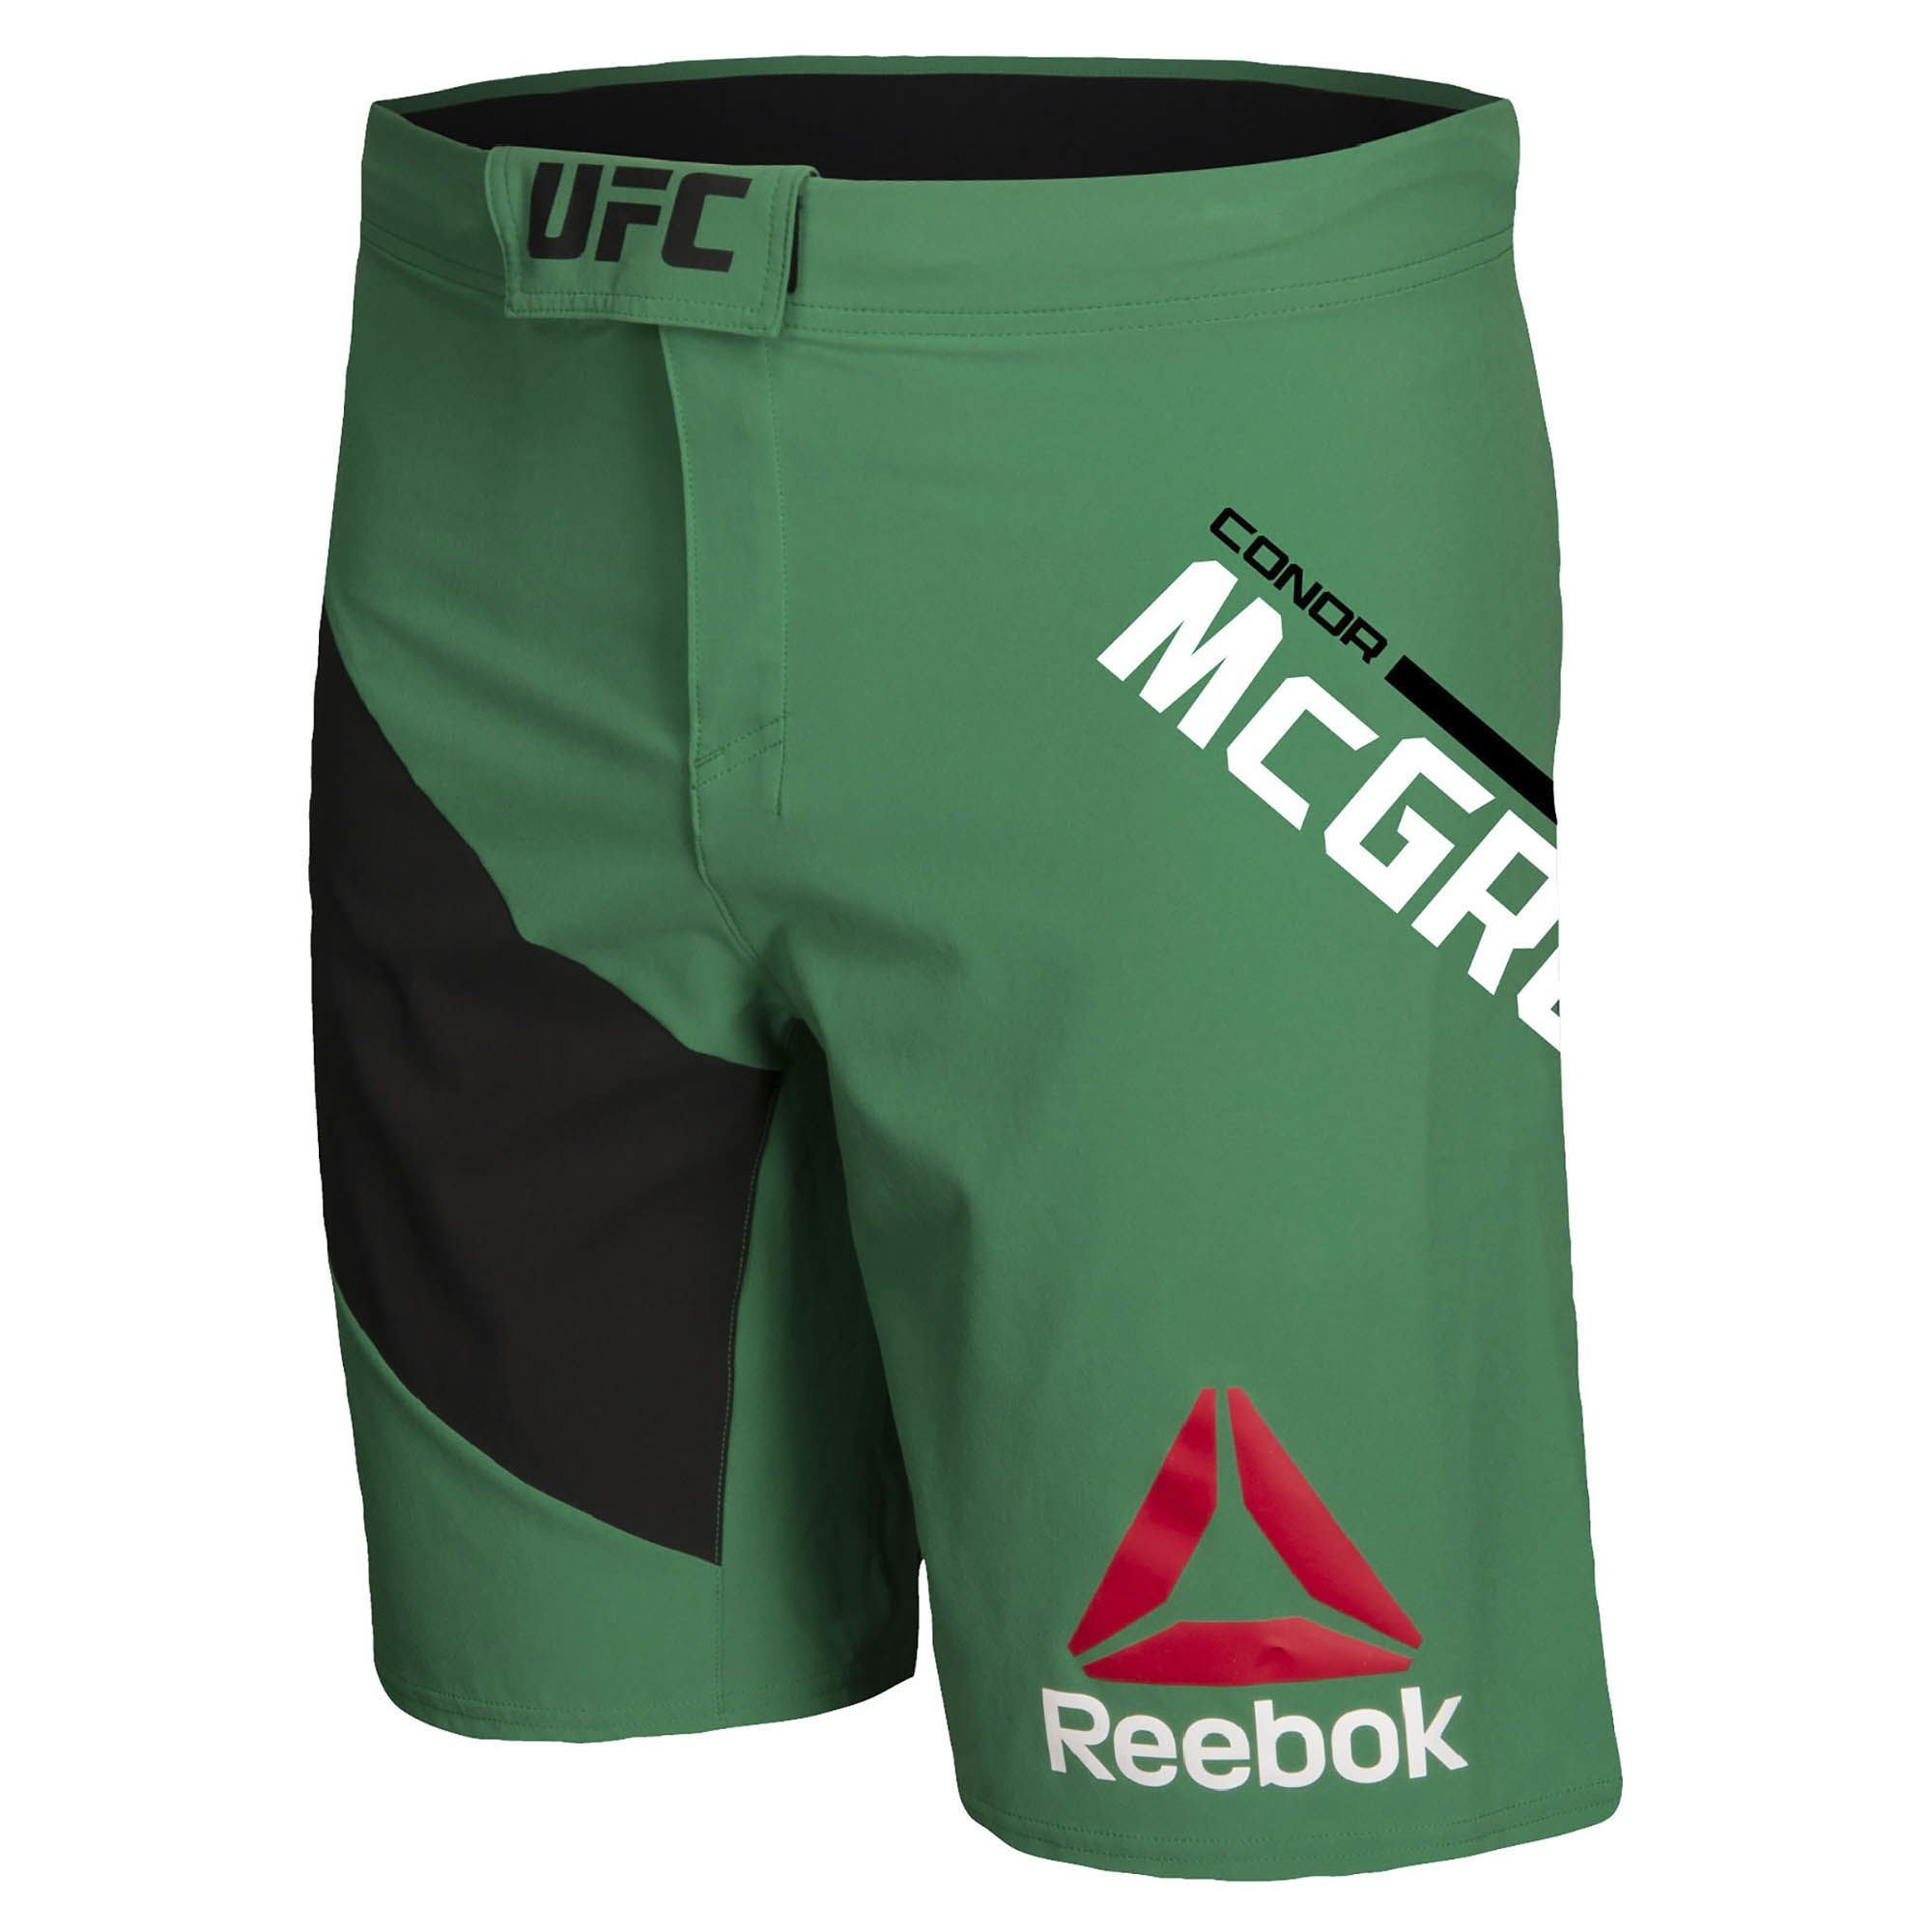 3b20deea1 Reebok - UFC Fight Kit Conor McGregor Octagon Short